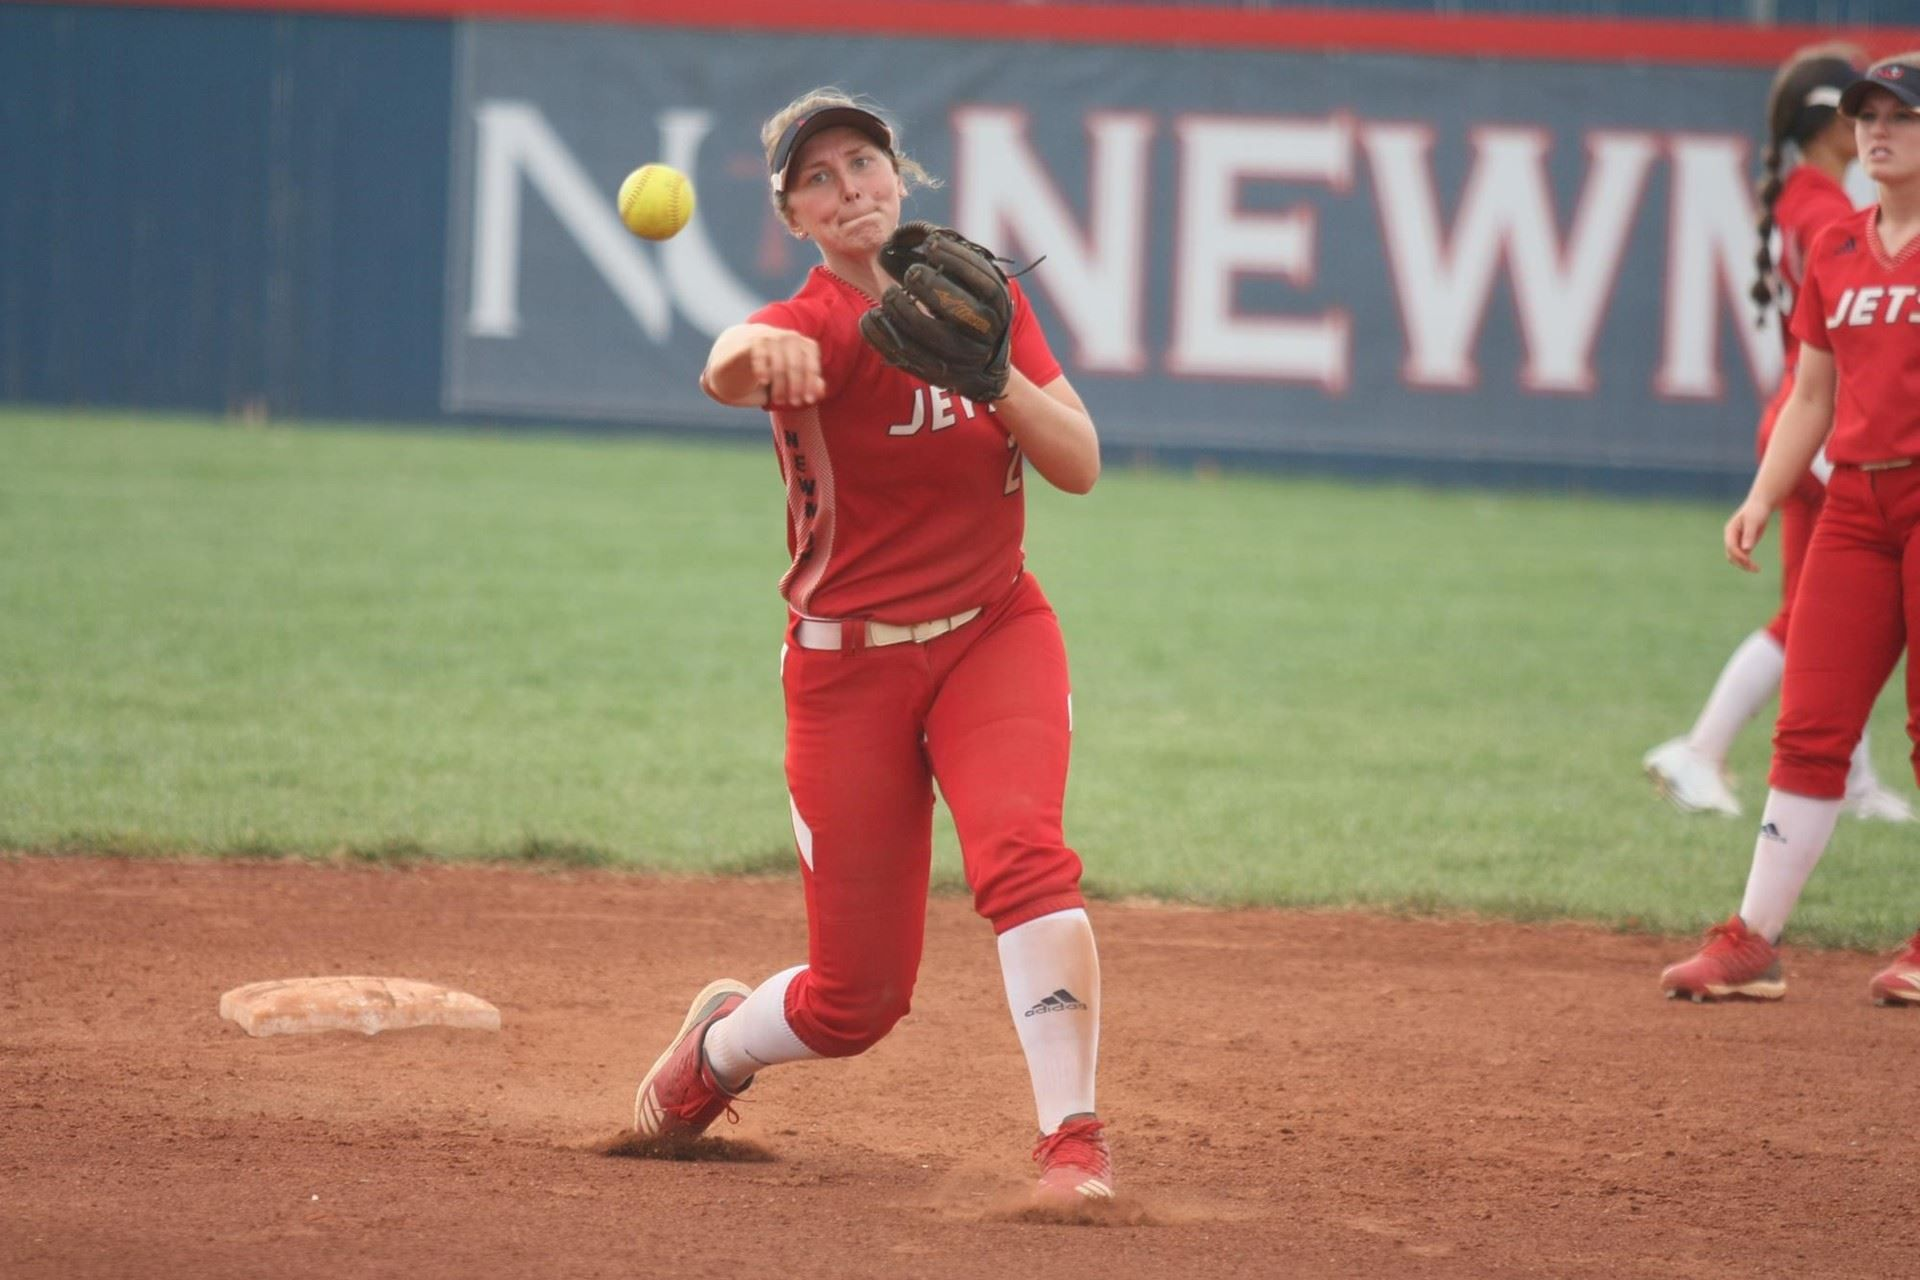 Softball in tough spot as it wraps up tricky season